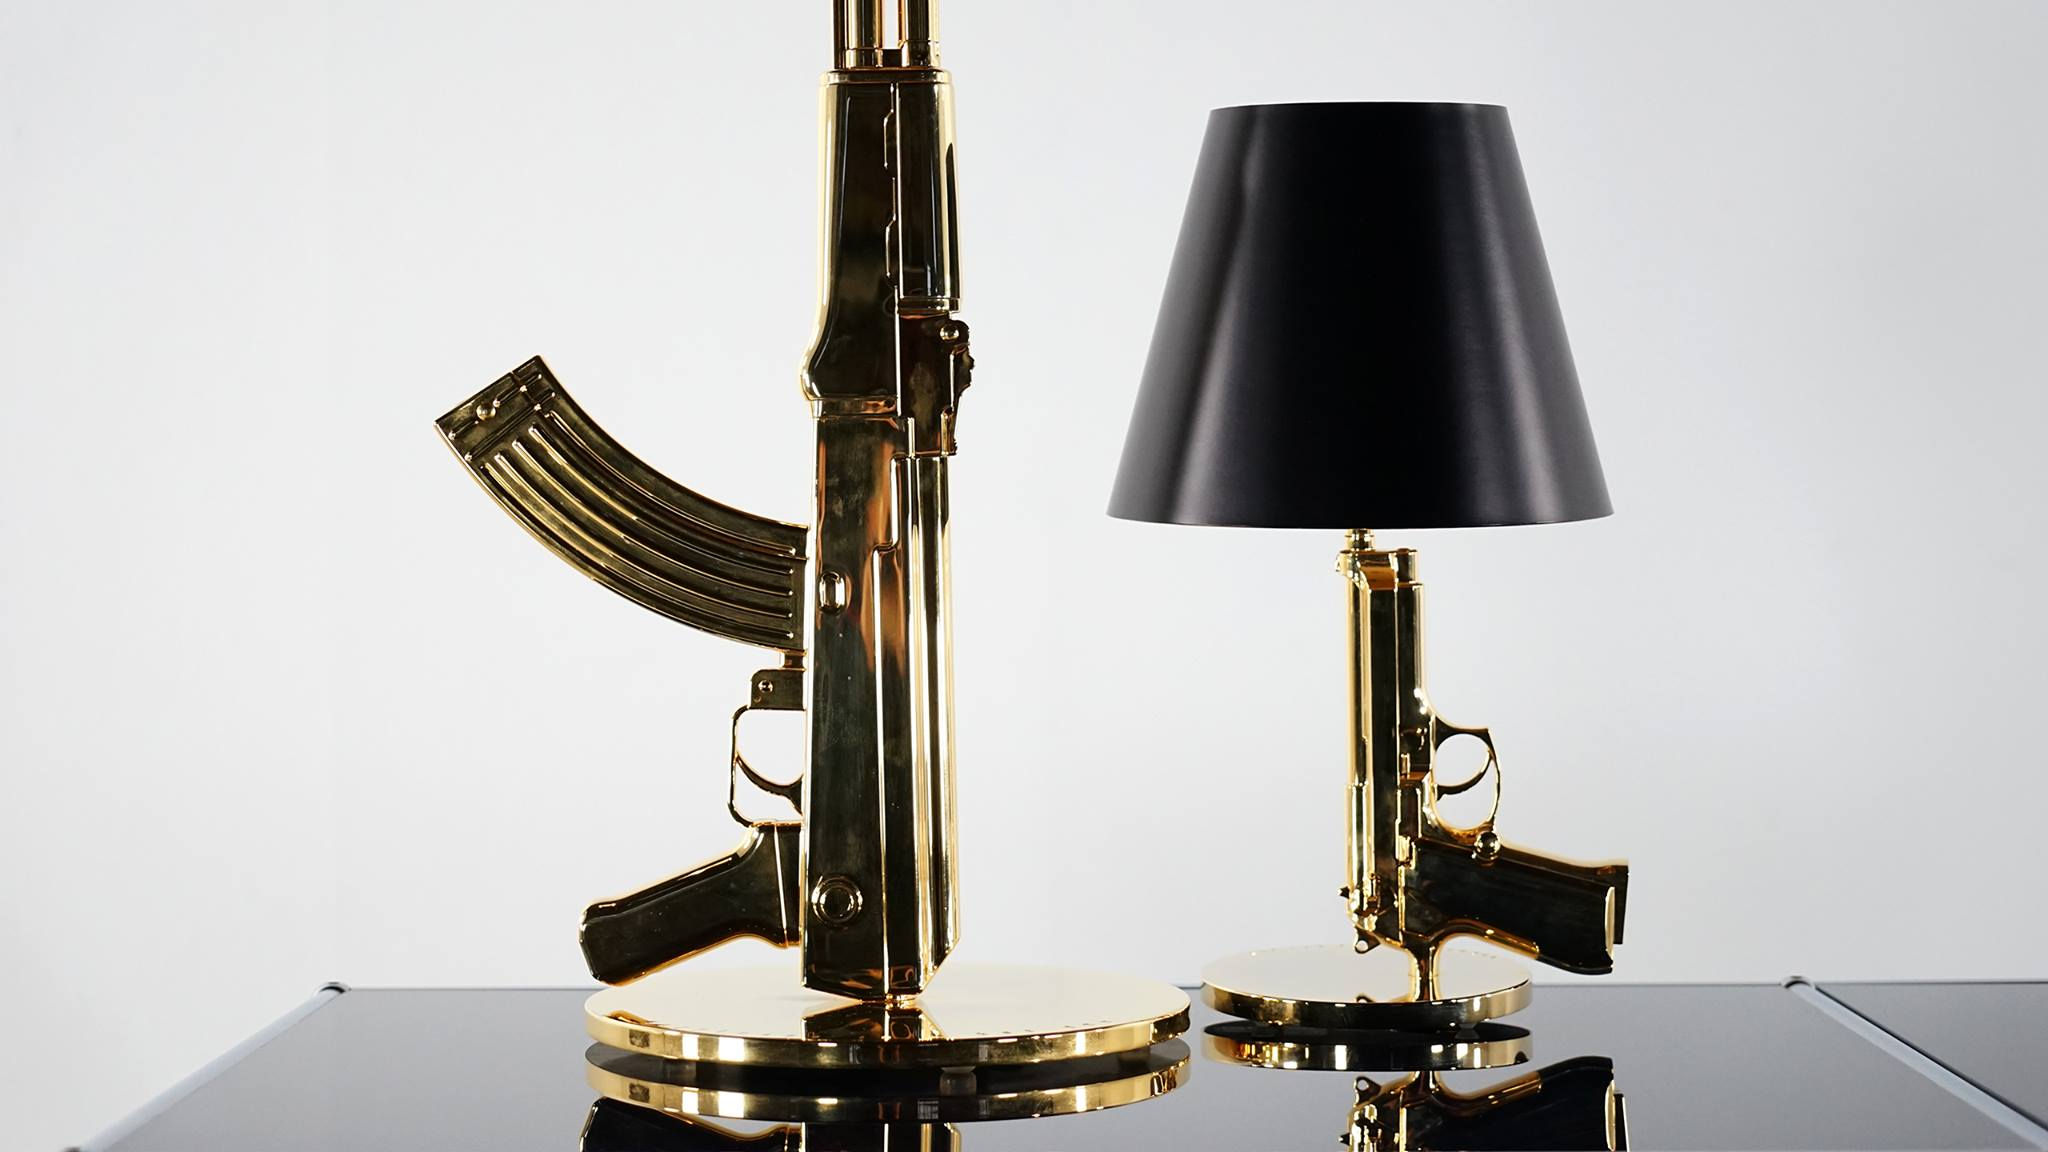 lampe revolver 18ct de philippe starck pour flos imlookingfor. Black Bedroom Furniture Sets. Home Design Ideas